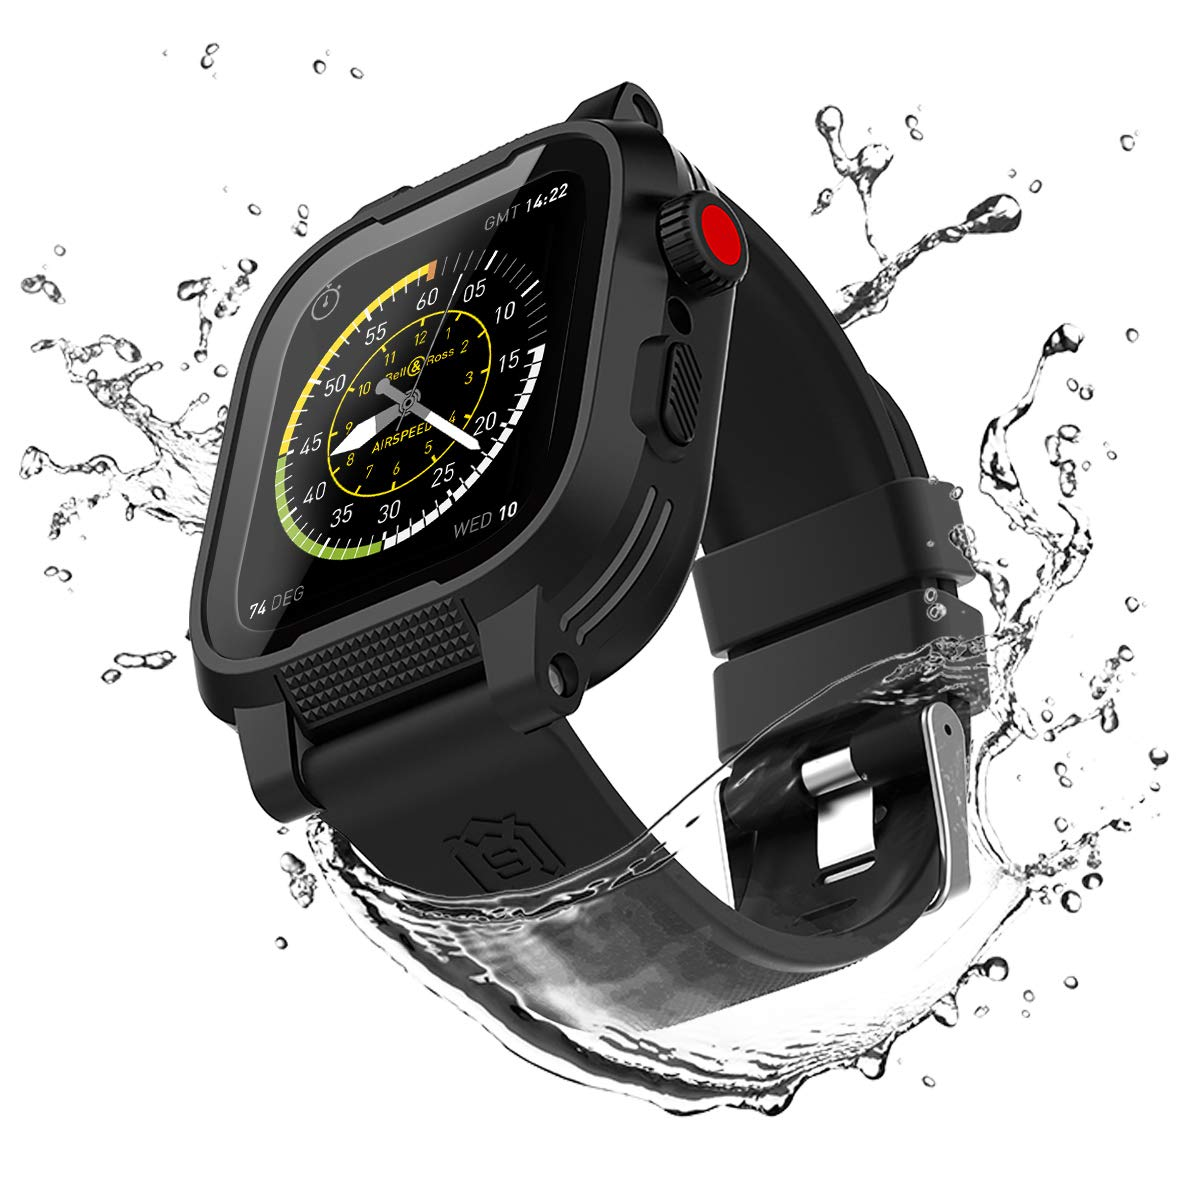 best service 907e5 dfbee Waterproof Case for 44mm Apple Watch Series 4 Heavy Duty Shockproof Impact  Resistant iWatch Sealed Protective Case with Premium Soft Silicone Watch ...